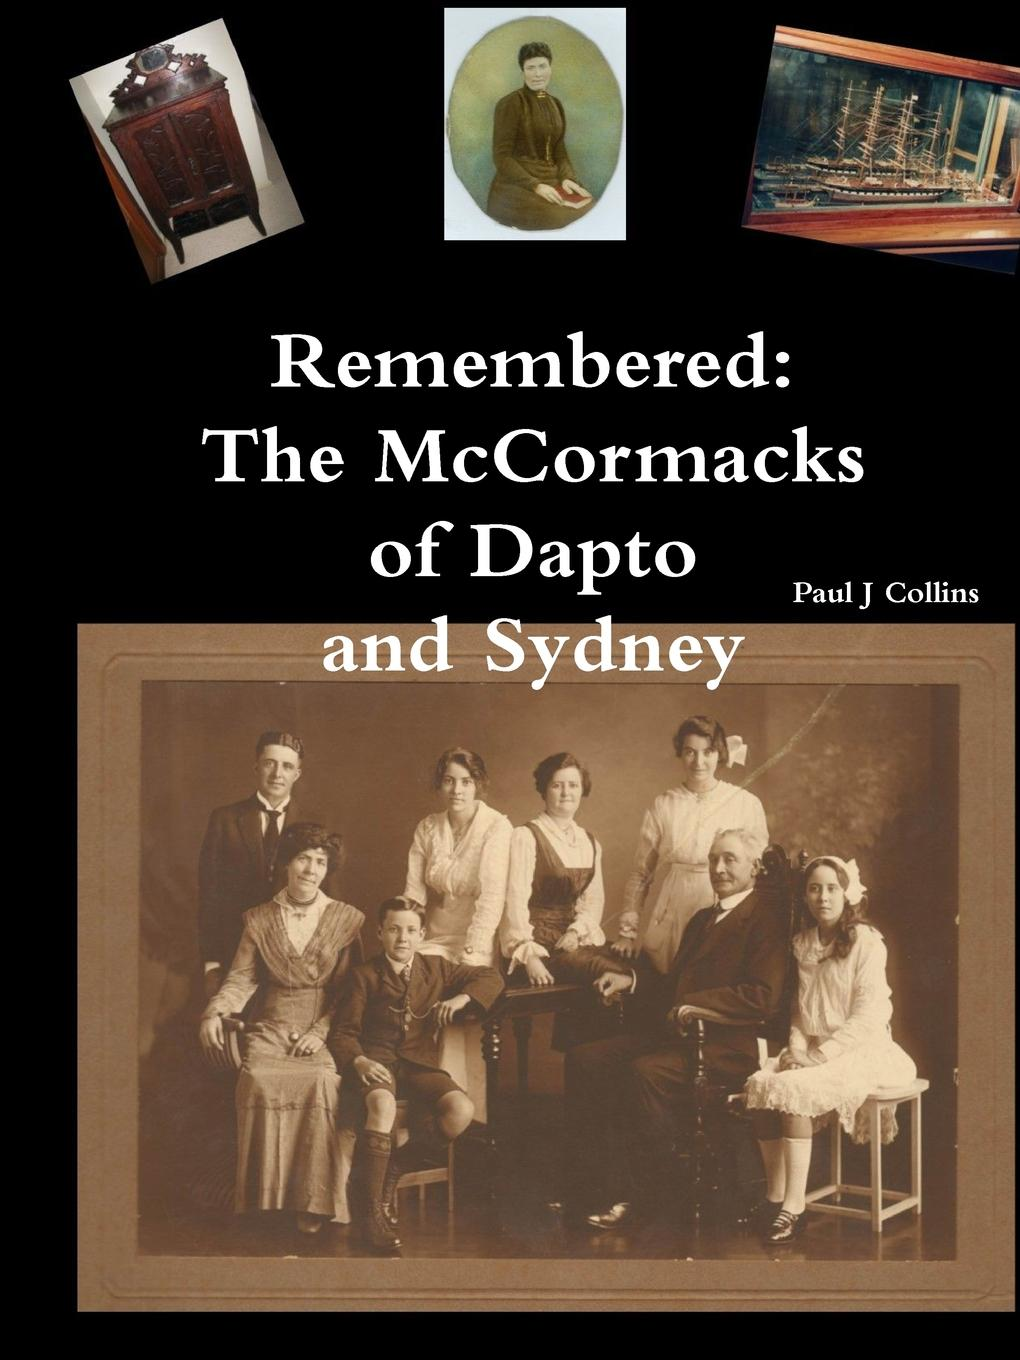 Paul J Collins Remembered. The McCormacks of Dapto and Sydney